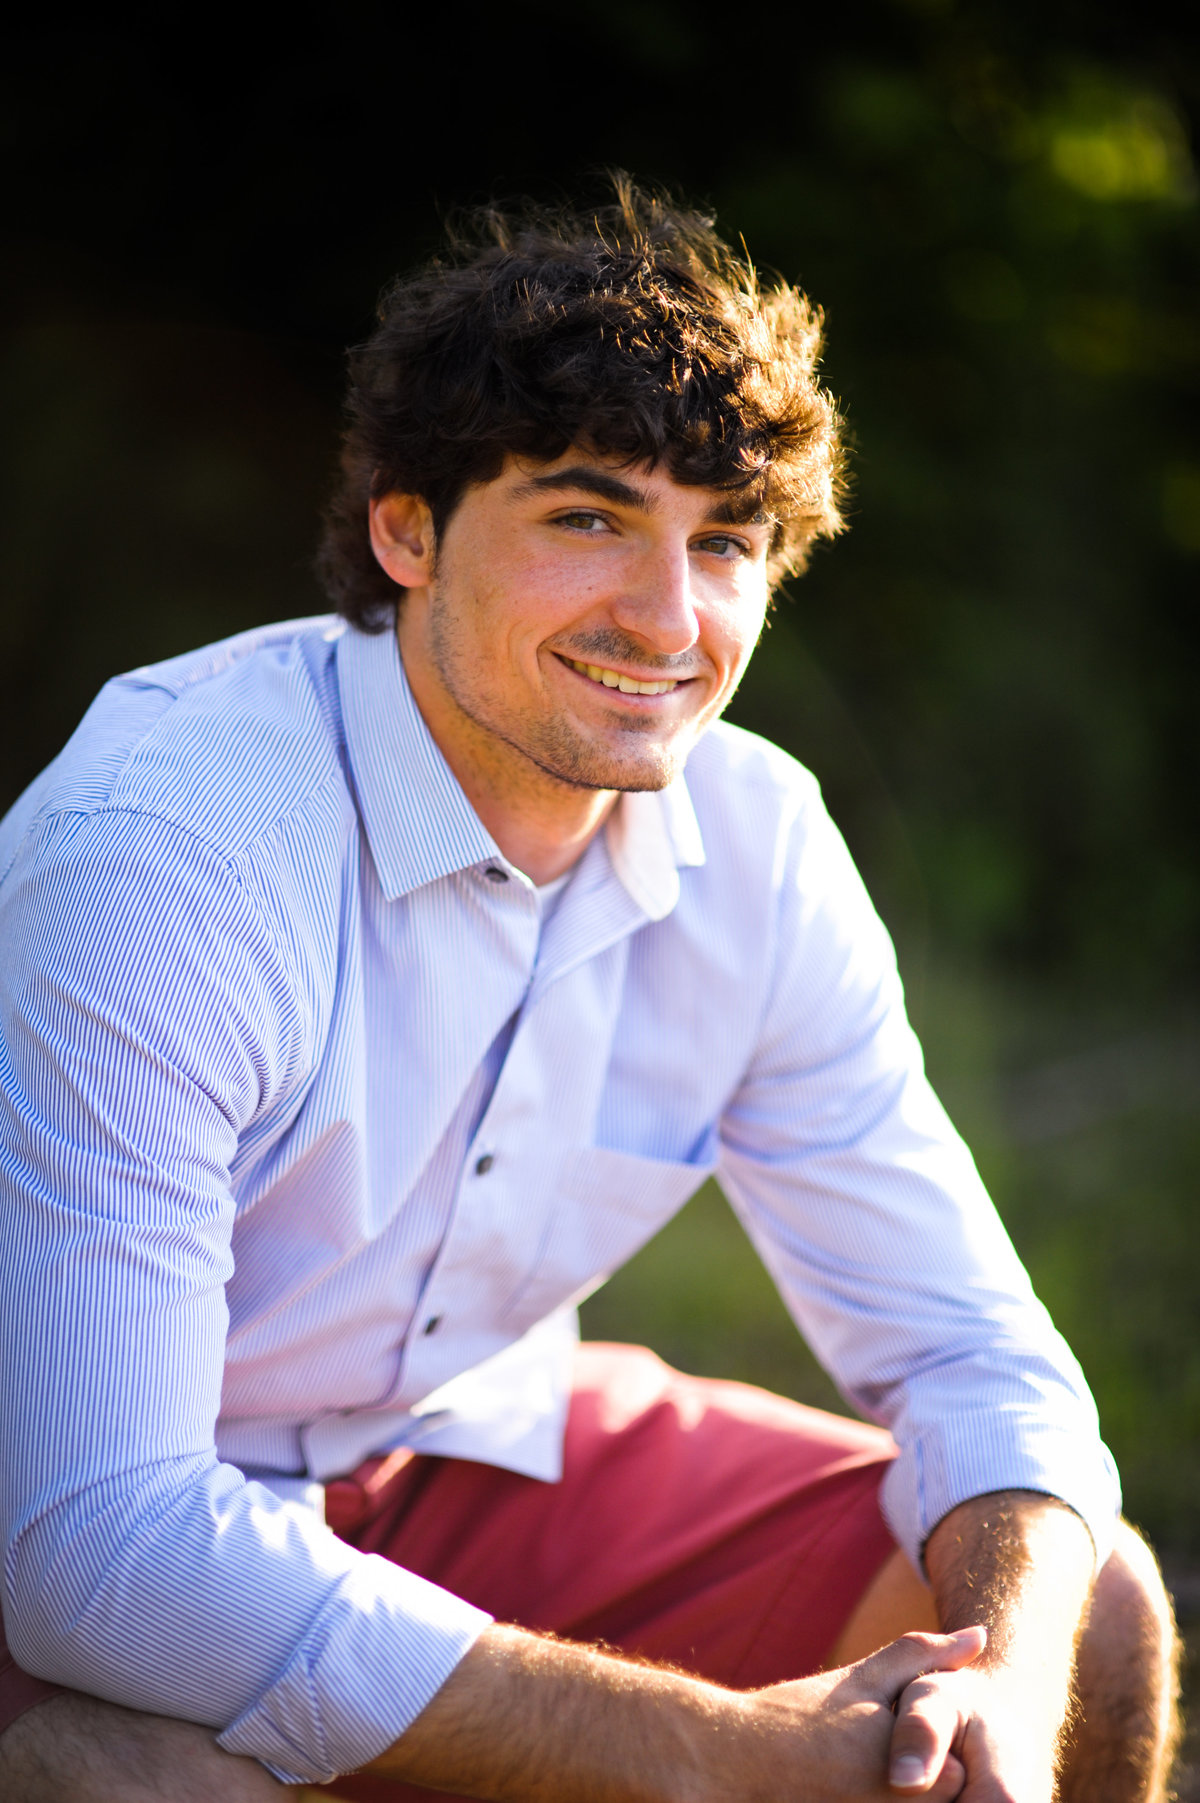 andrew'sseniorportraits,may1,2014-6591